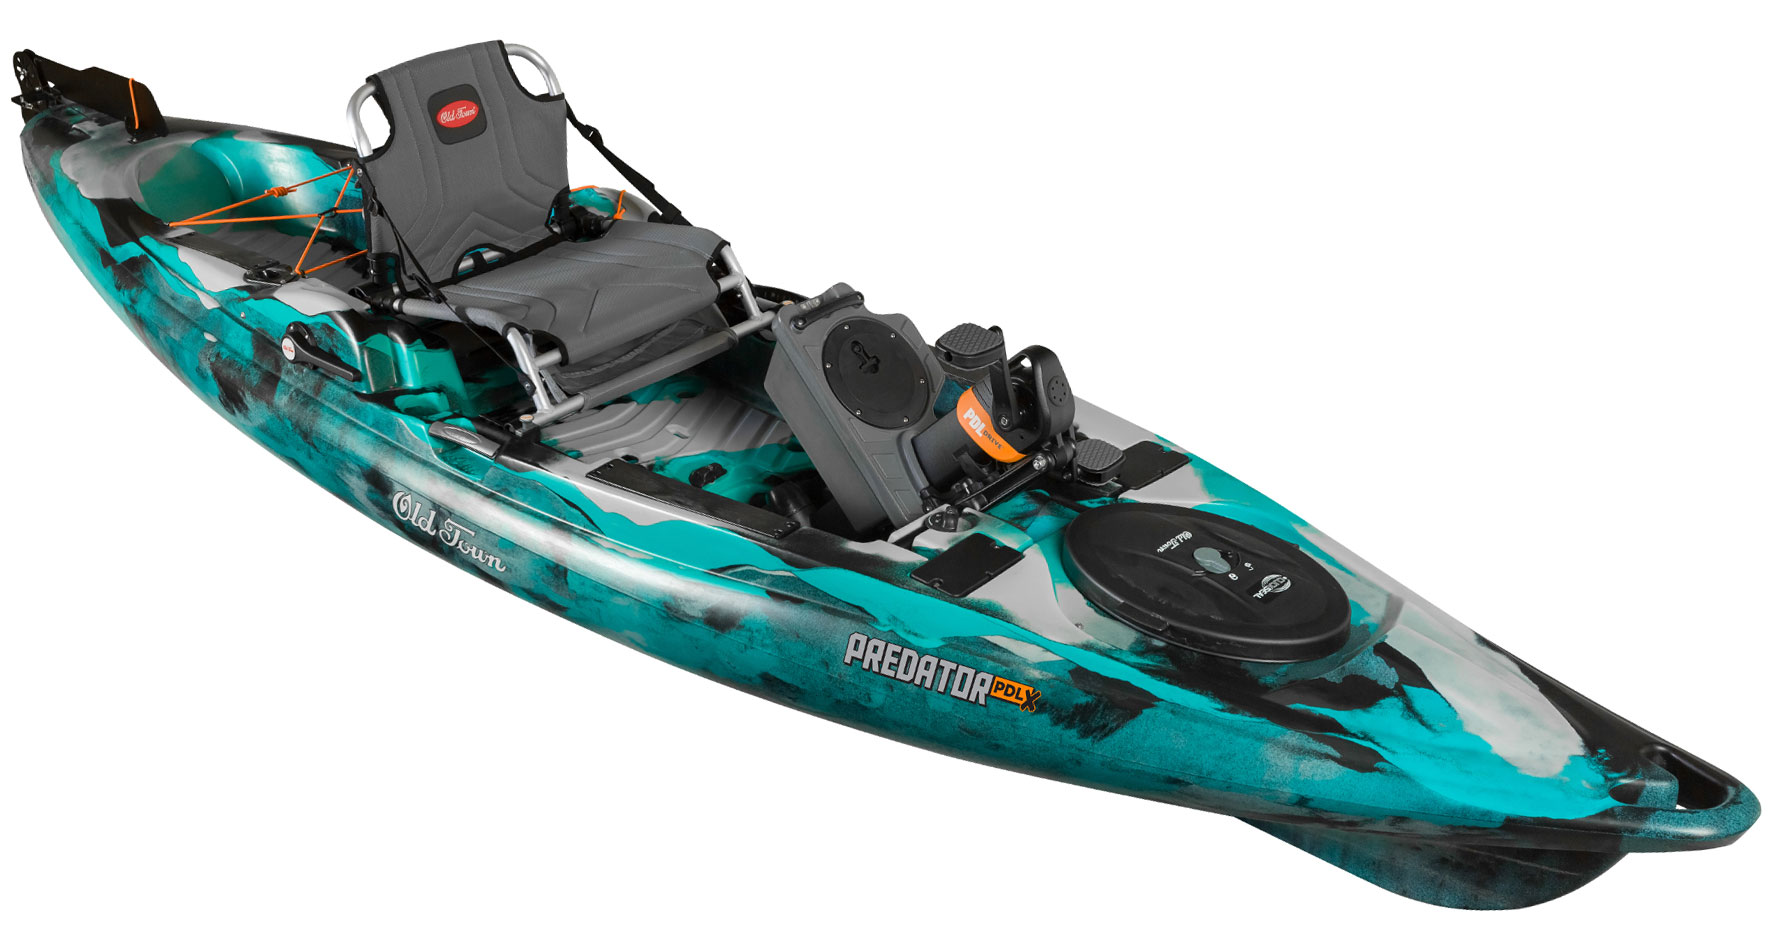 2019 Fishing Kayak Buyer S Guide On The Water